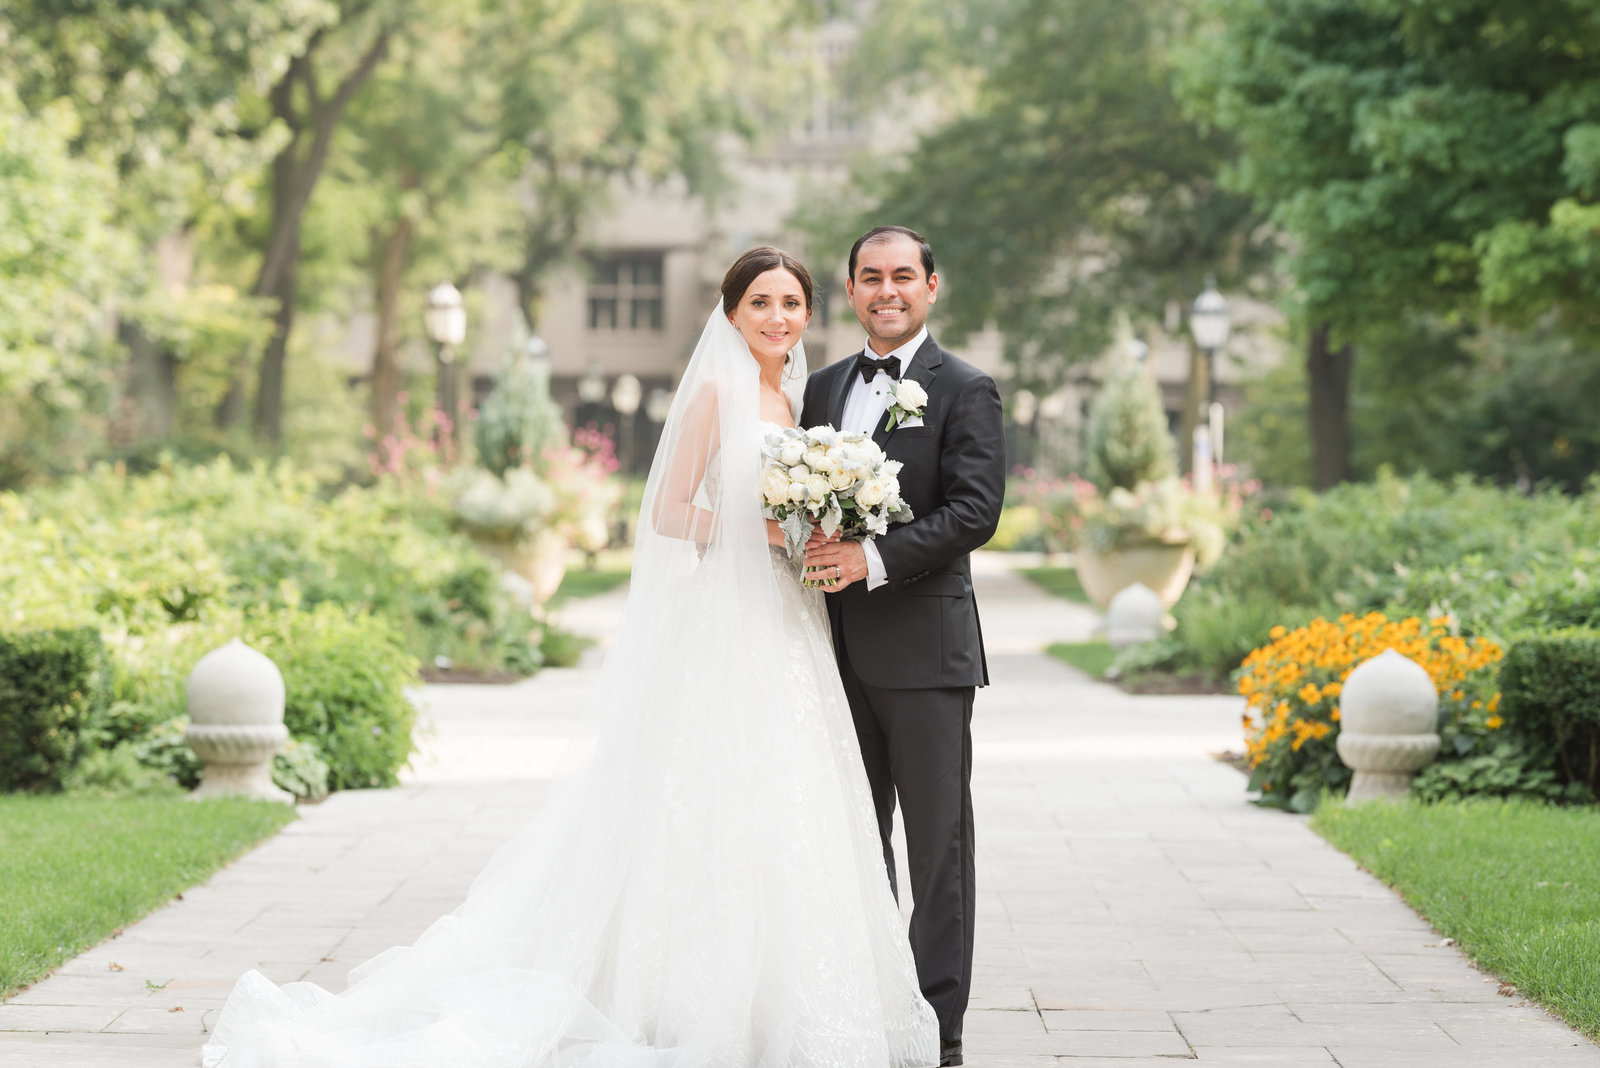 Beautiful wedding photo at the University of Chicago campus.